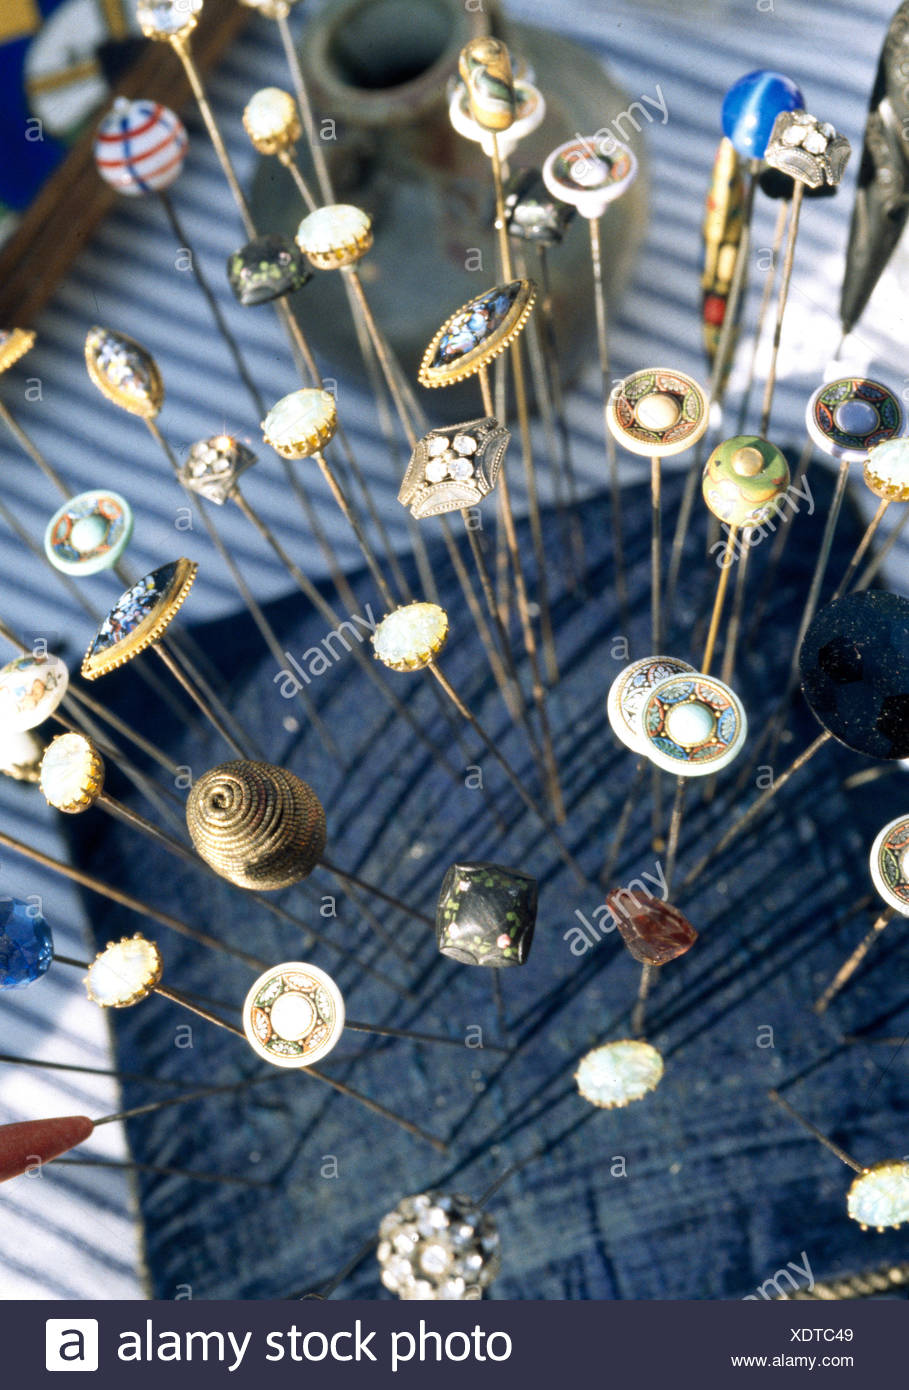 Collection of vintage hat pins displayed on market stall - Stock Image